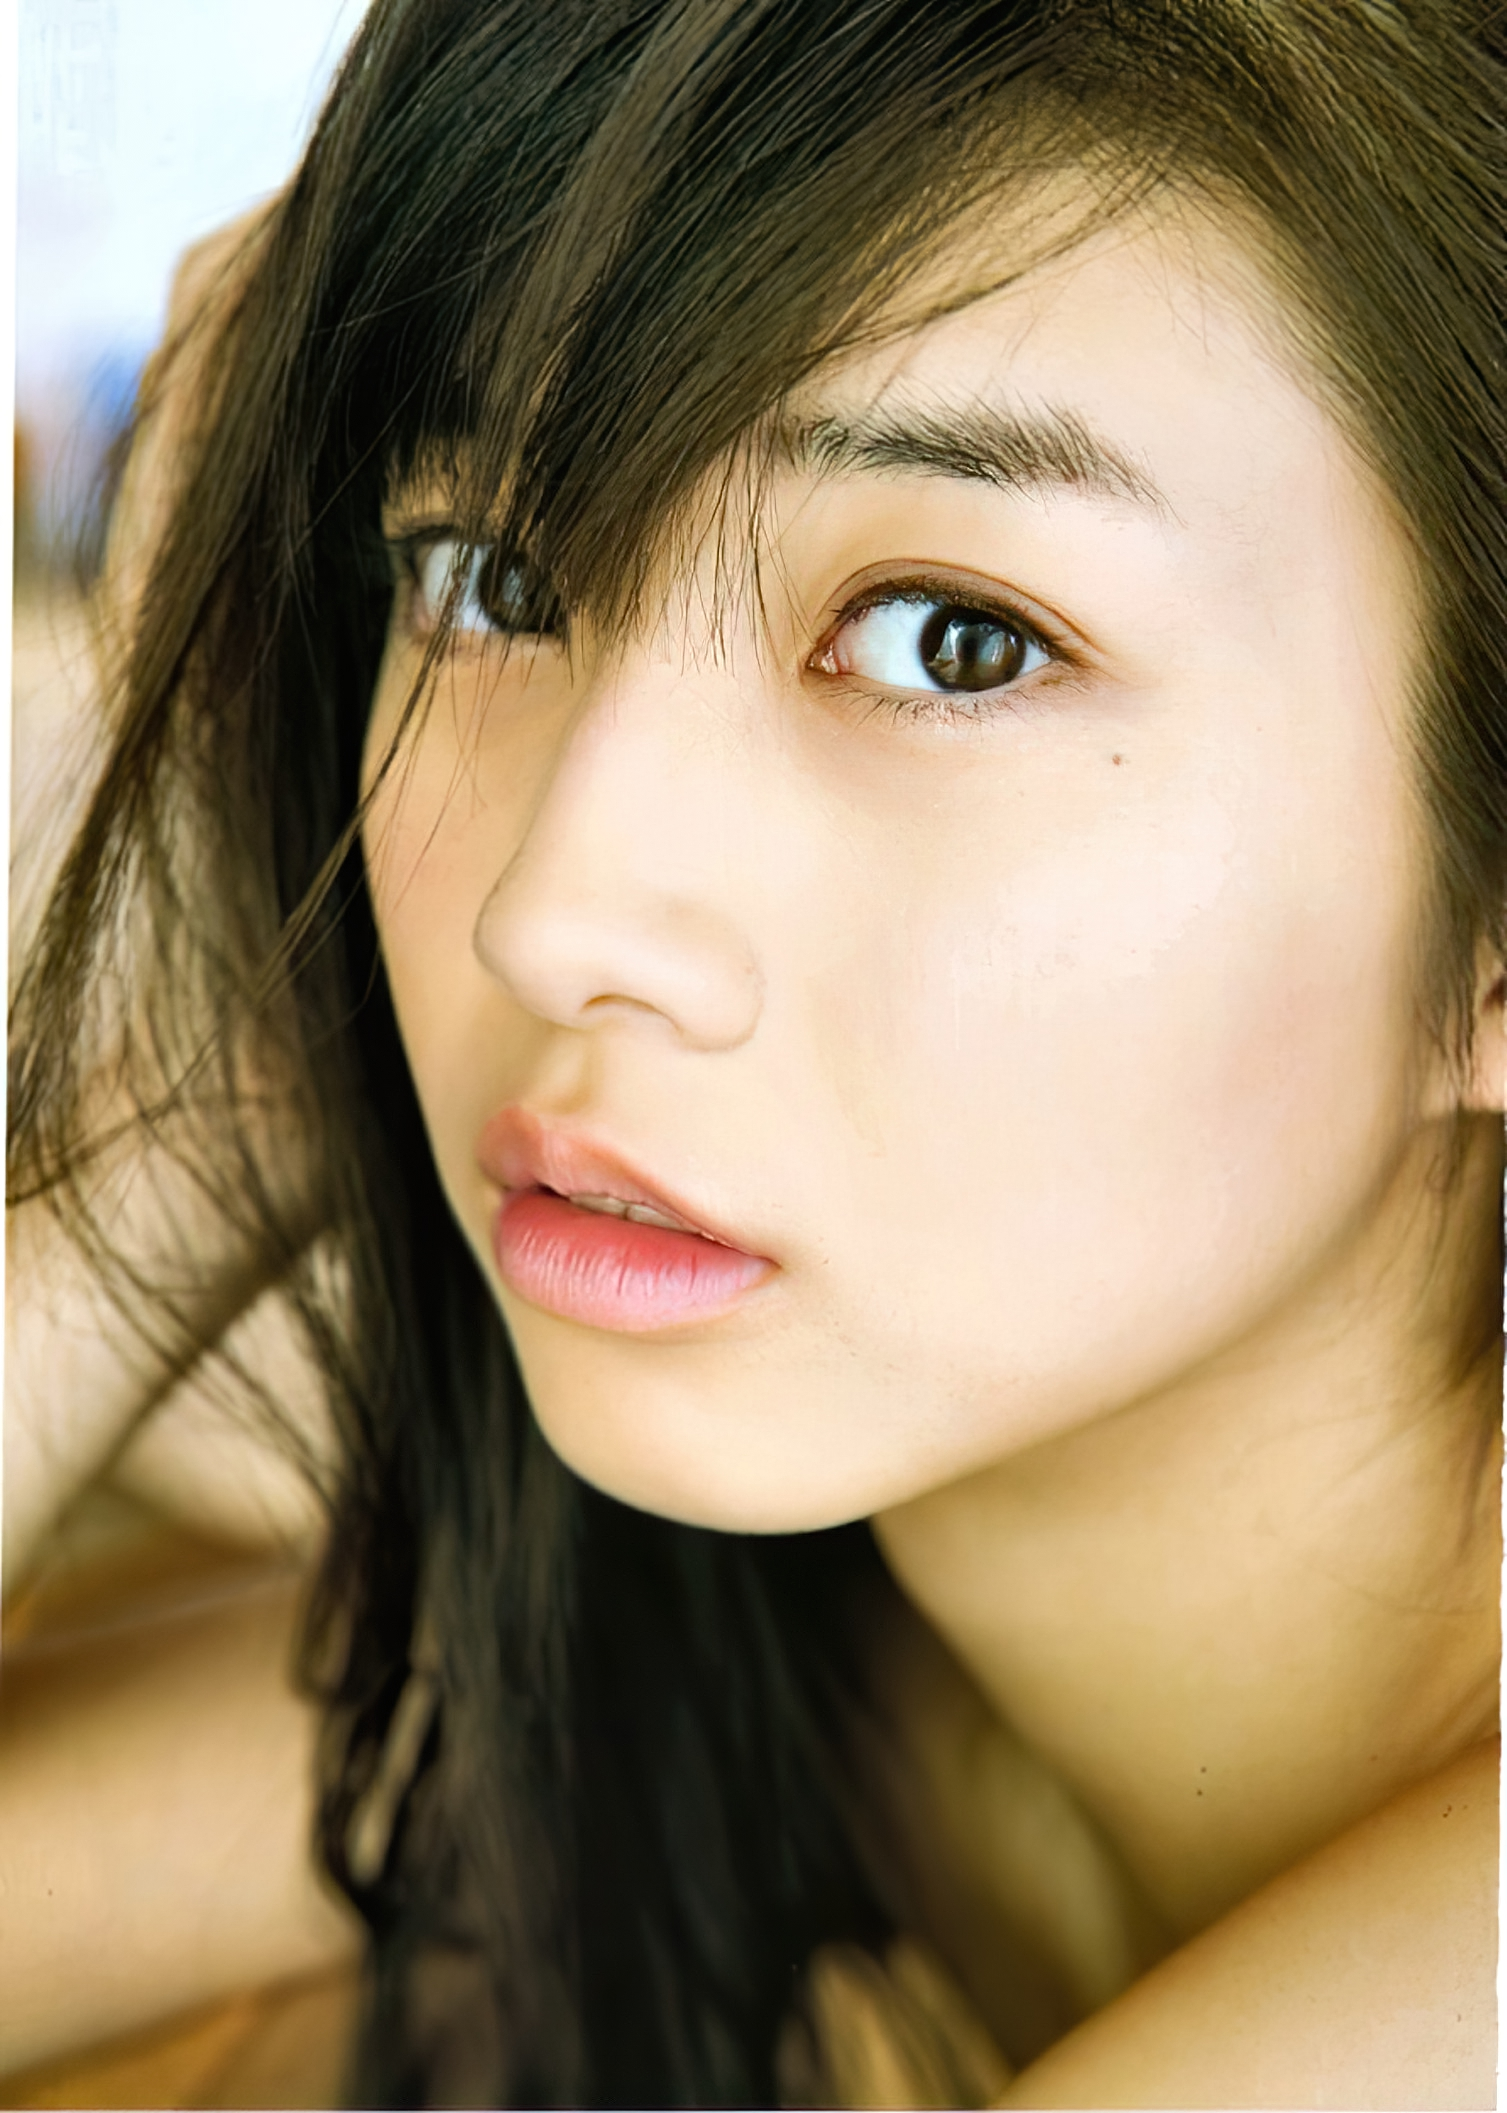 One beautiful girl She is 17 years old and a senior in high school MARIE MAKINO110